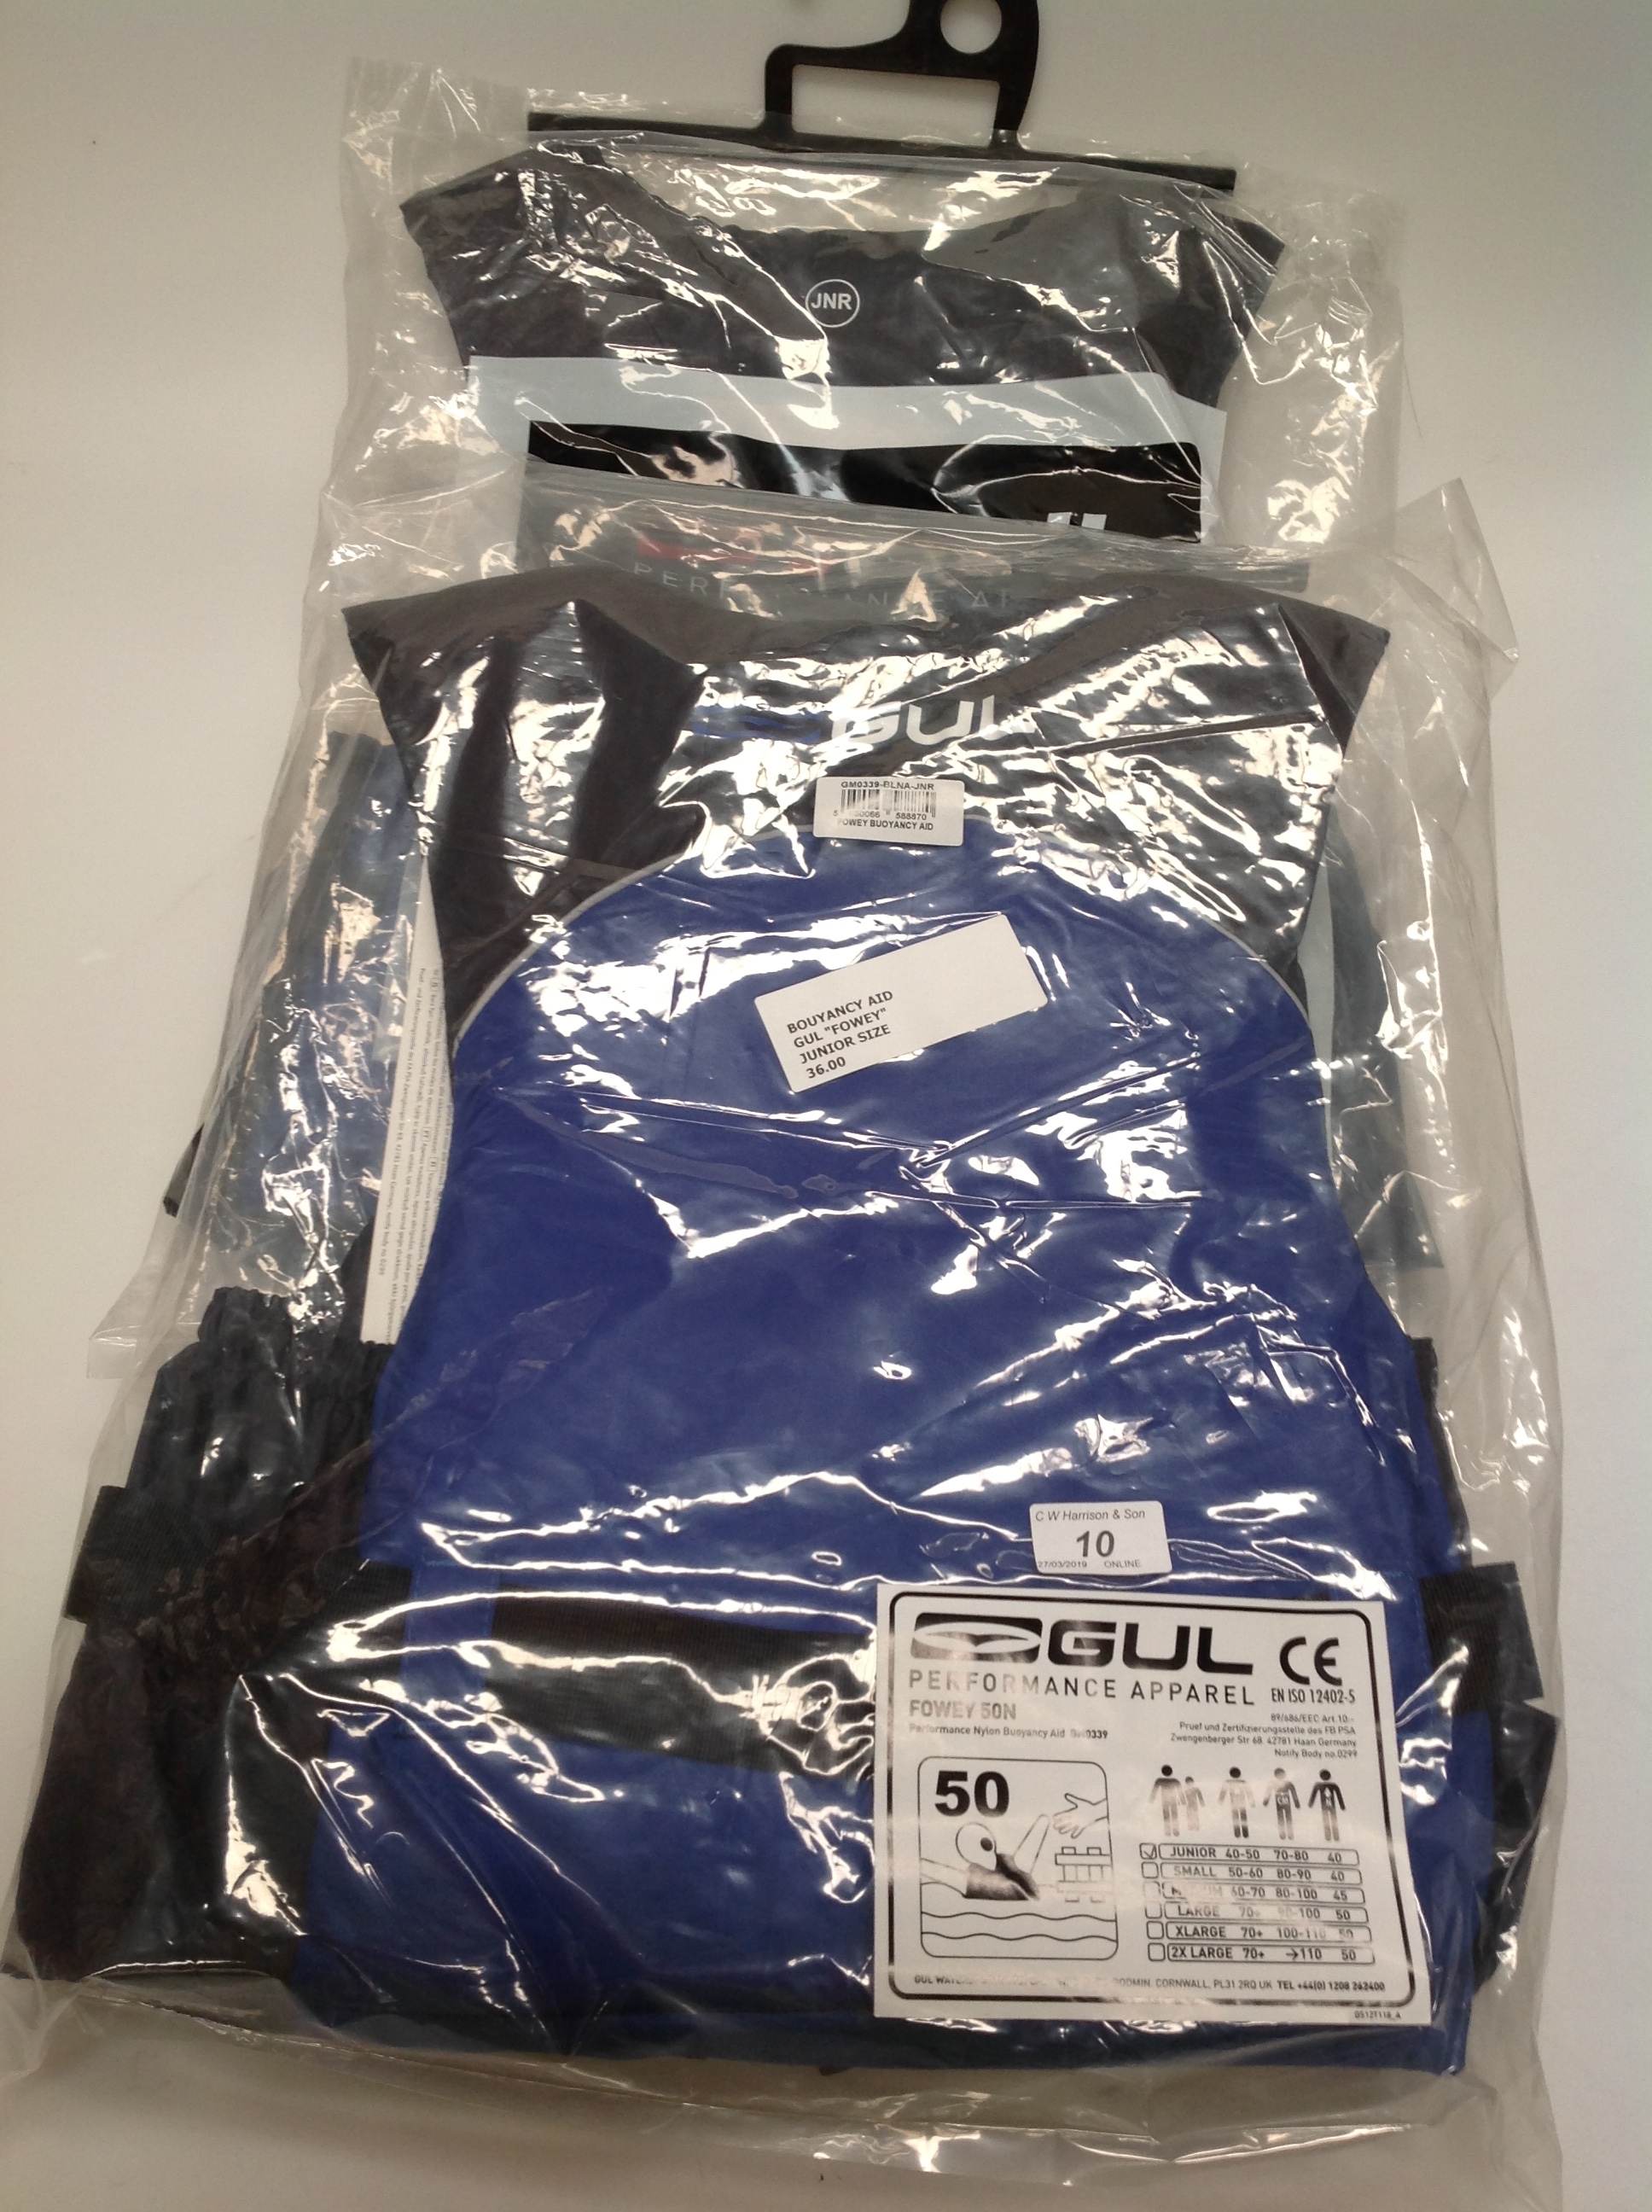 Lot 10 - 2 x Gul Fowey 5ON buoyancy aids in blue and black - size junior (RRP £36)